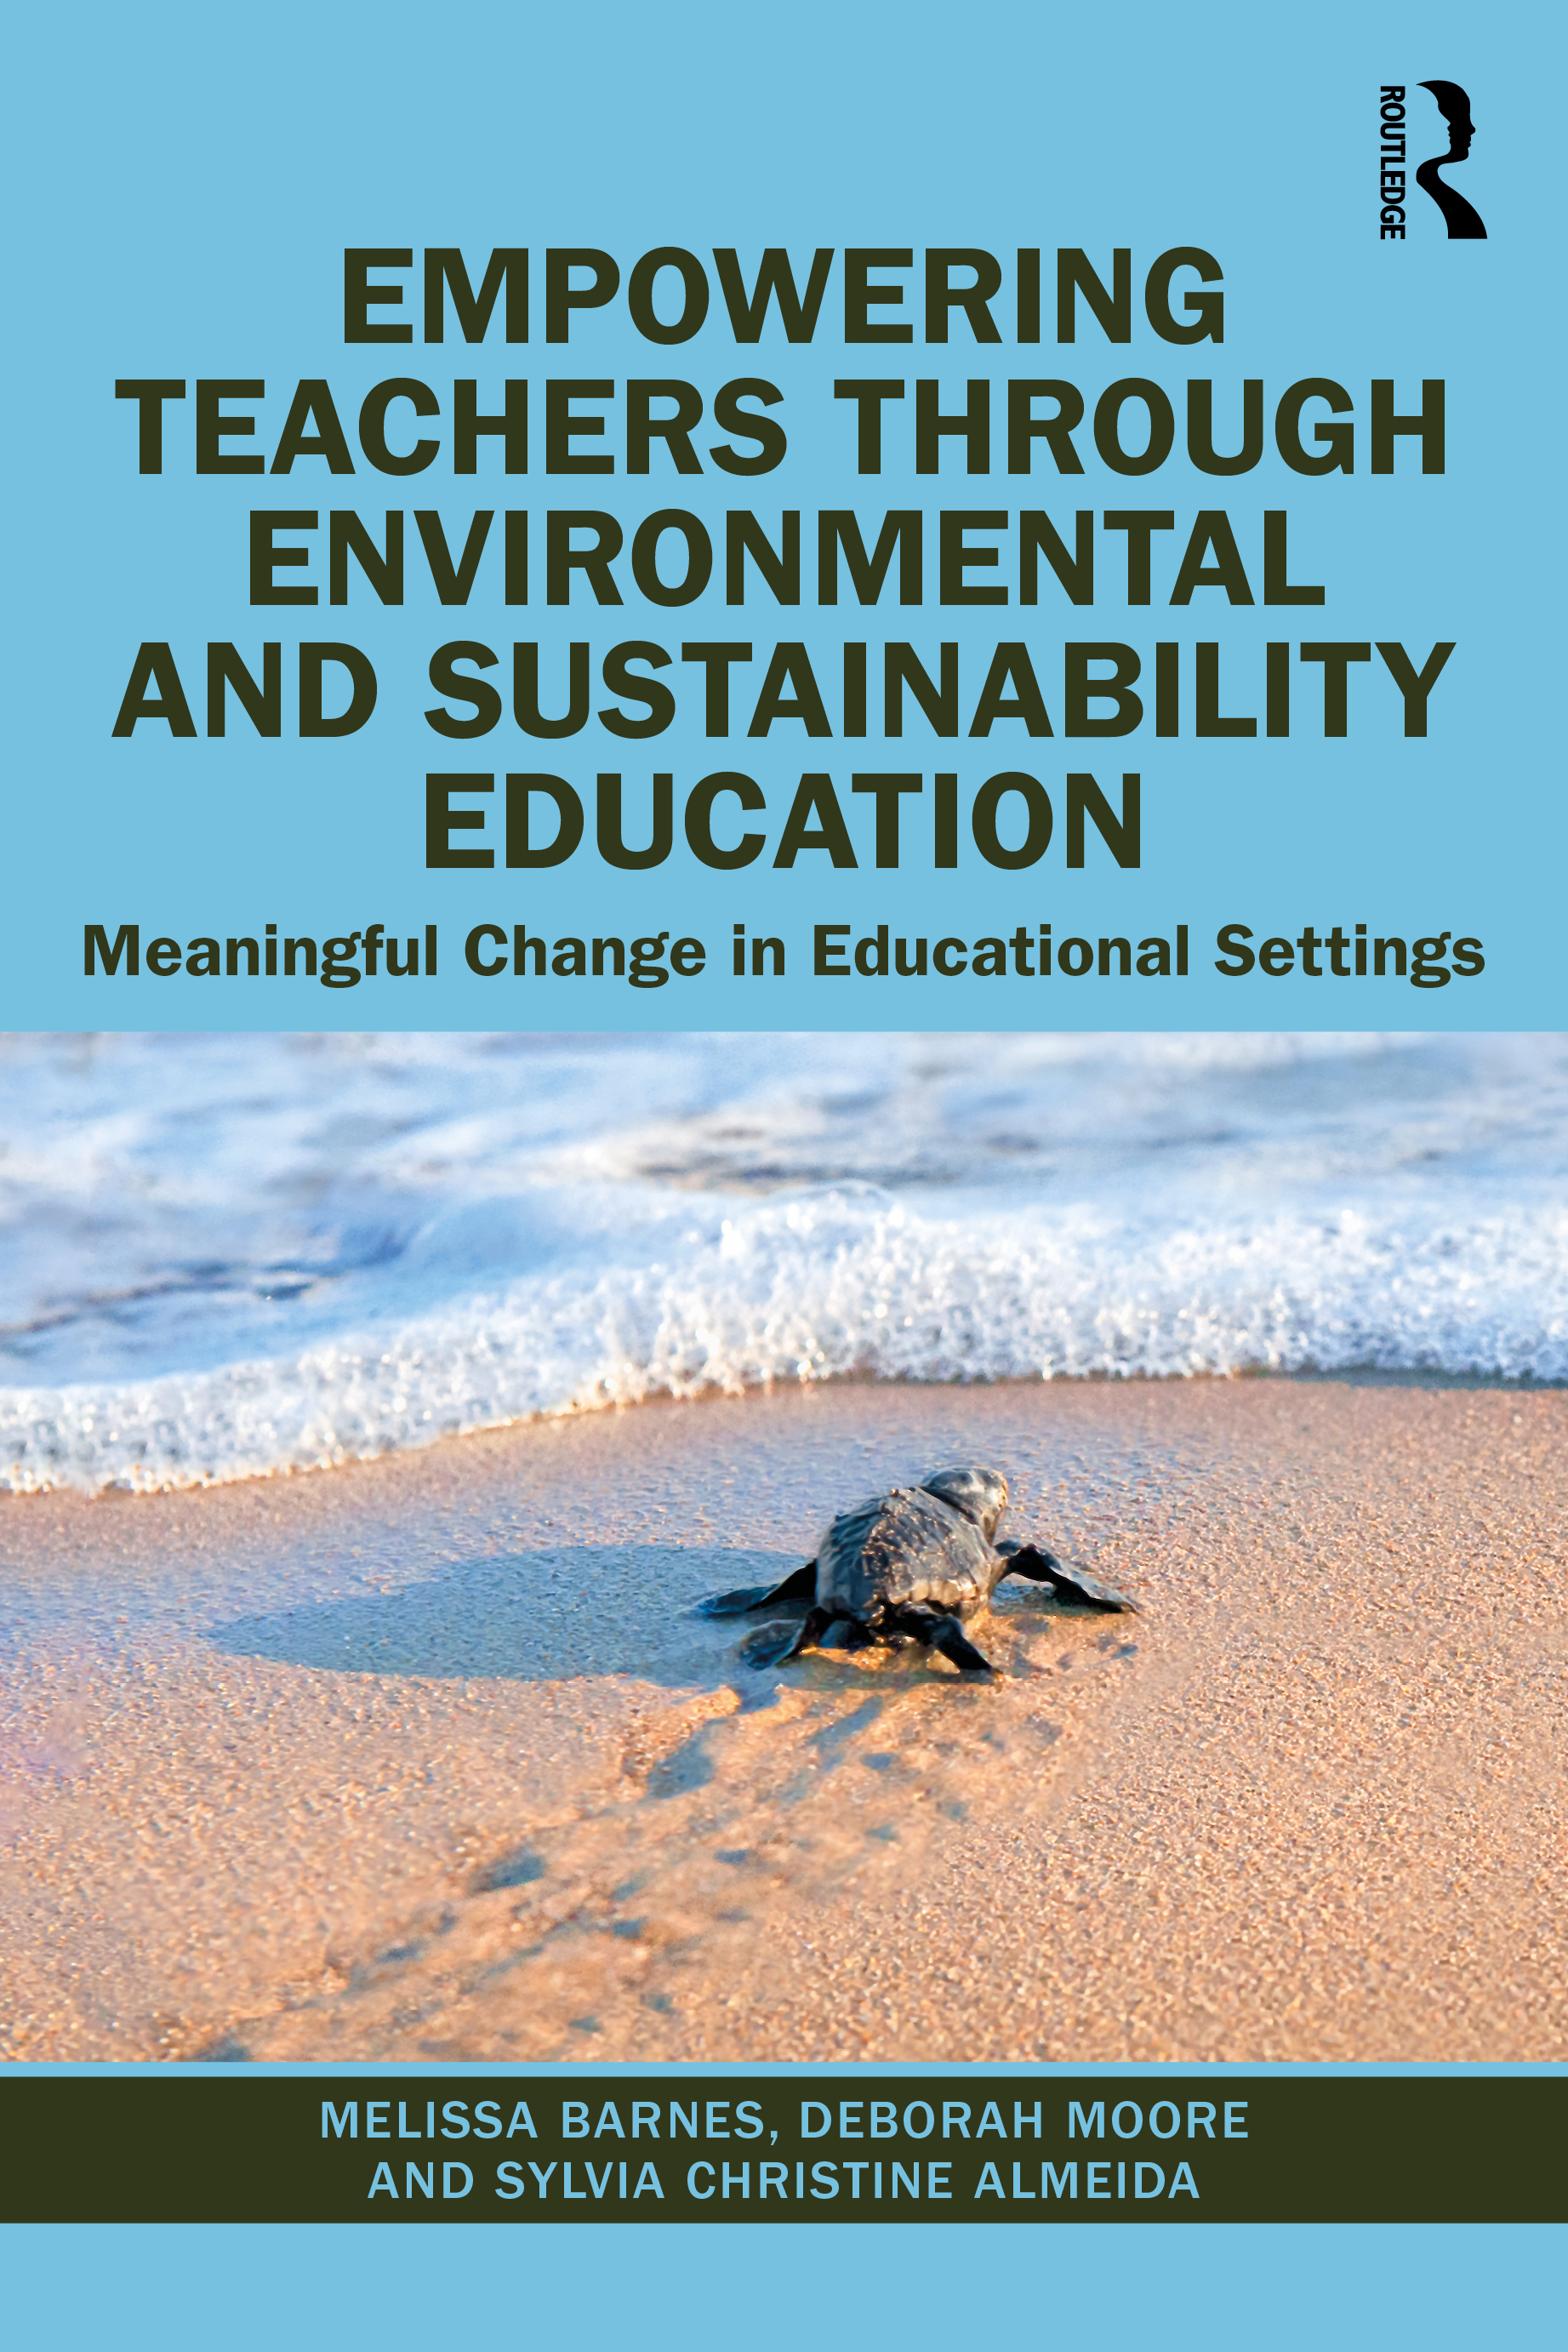 Empowering Teachers through Environmental and Sustainability Education